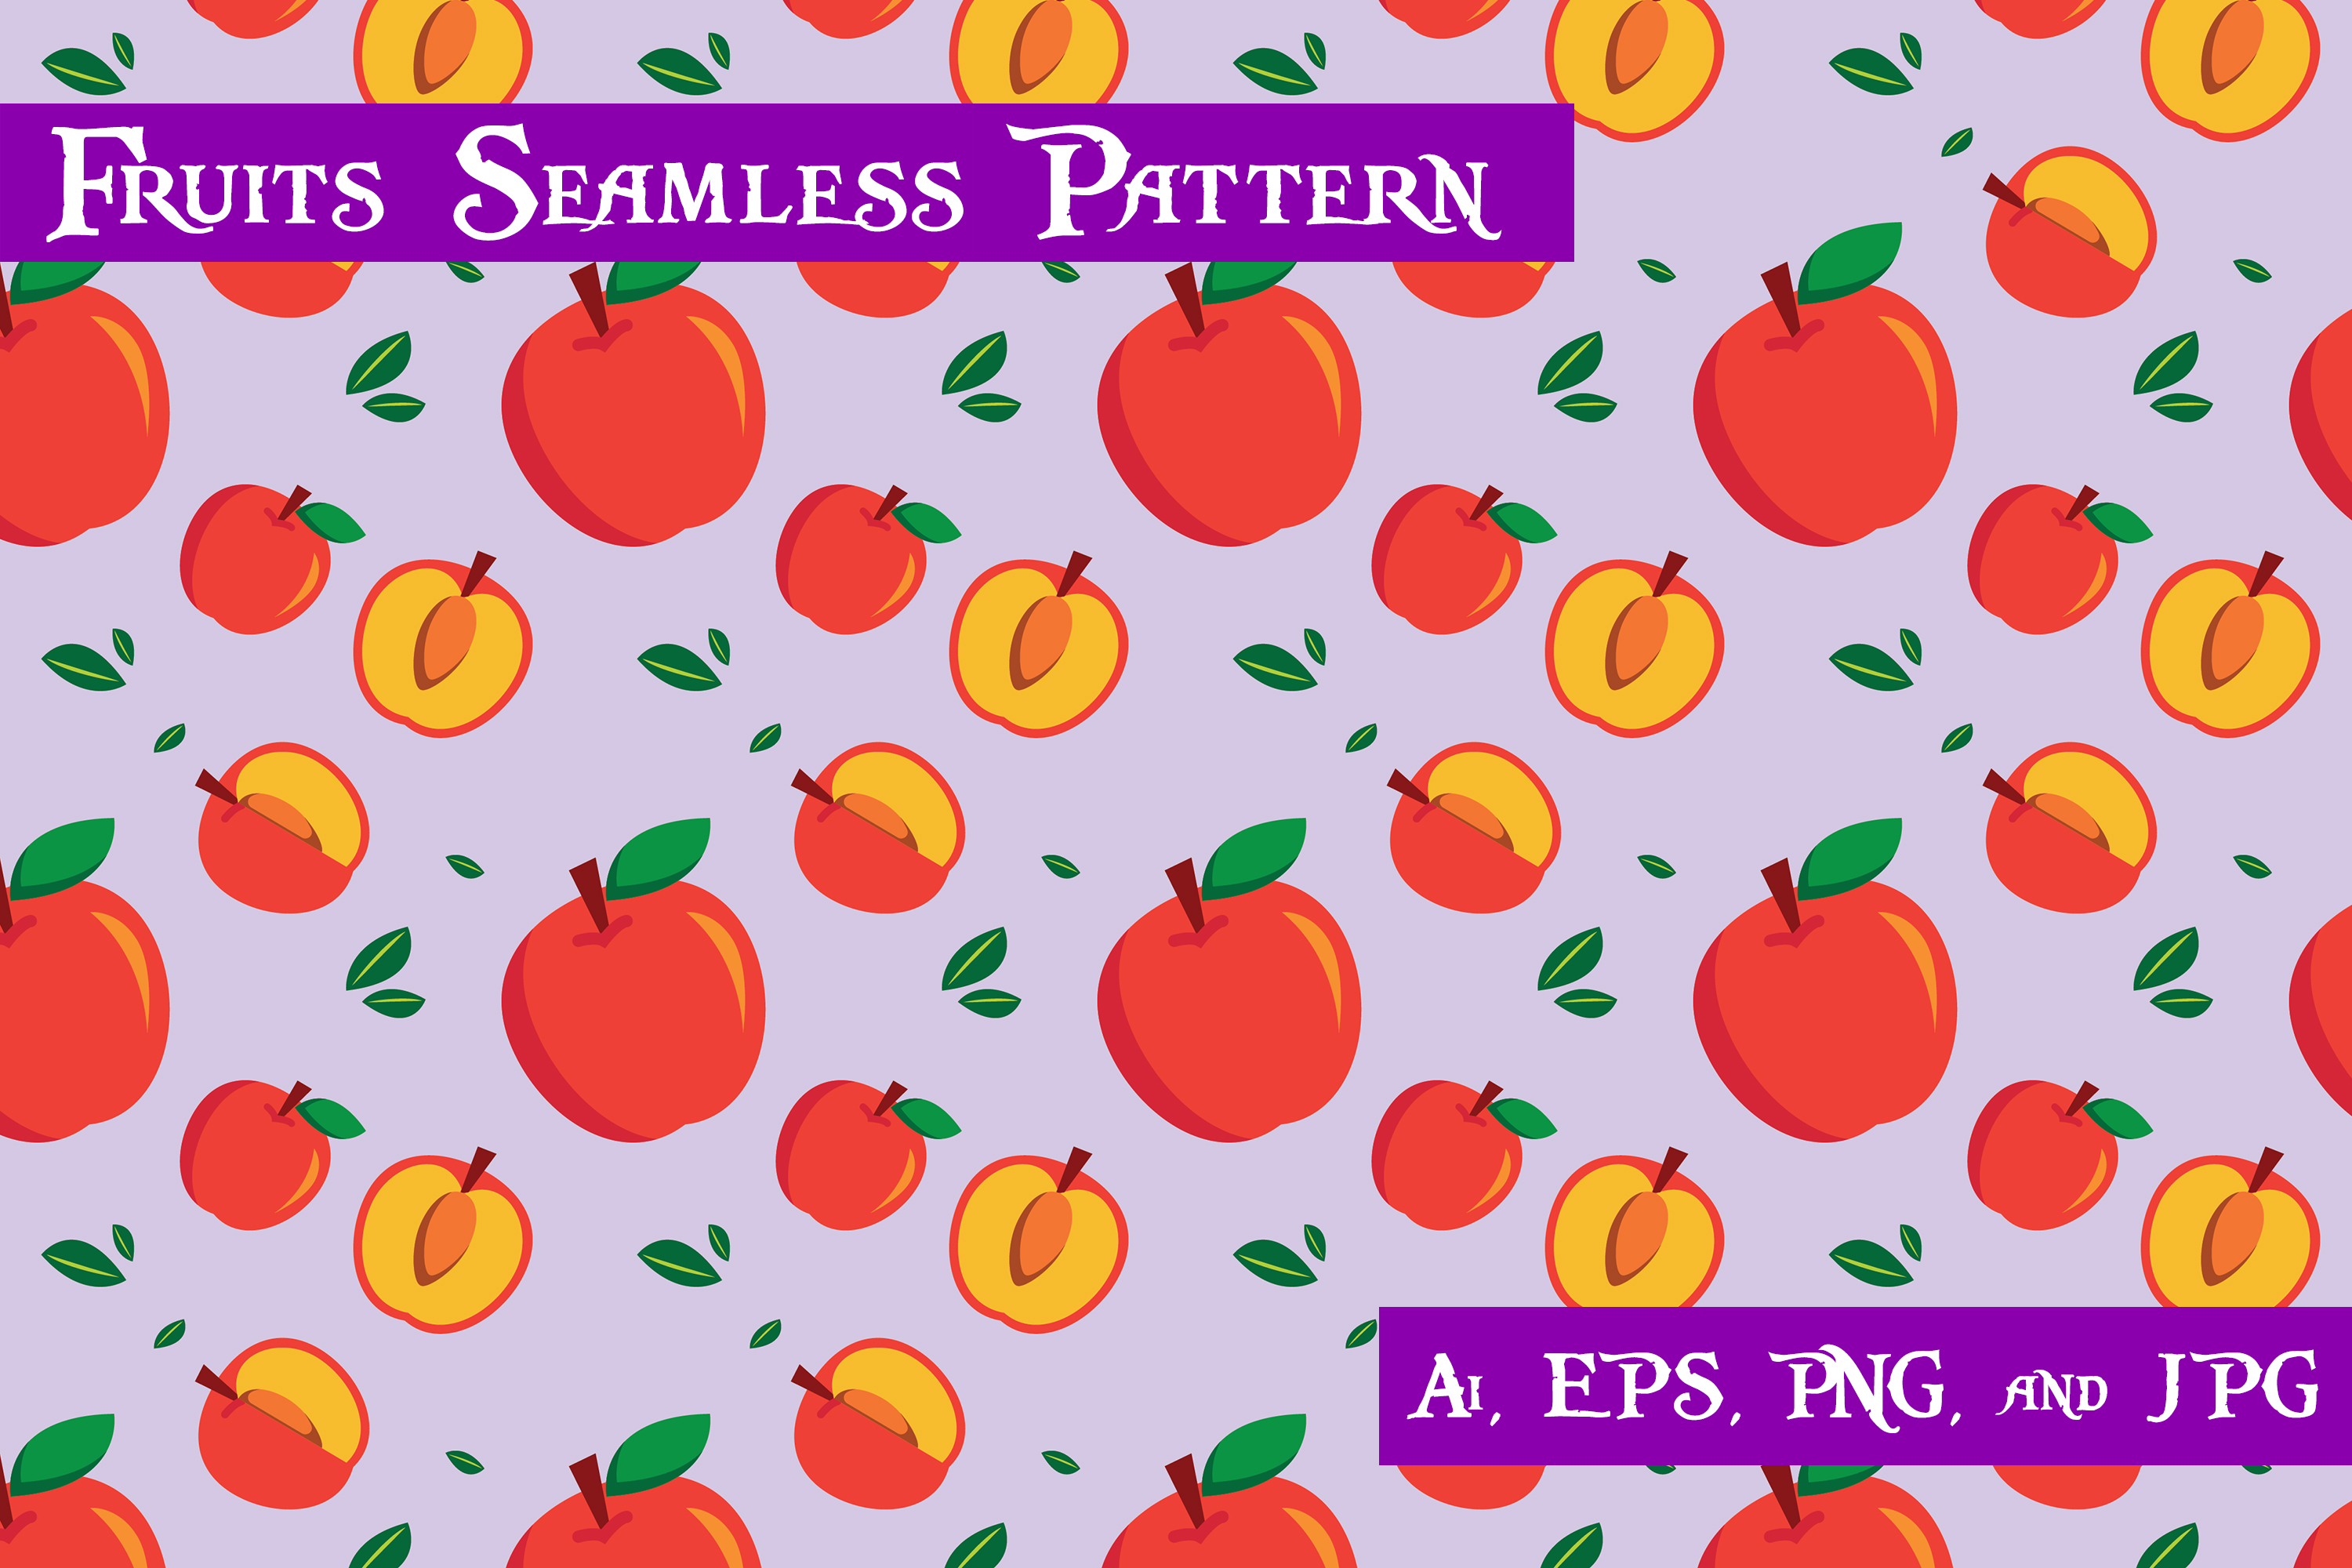 Download Free Apple Fruits Seamless Pattern Graphic By Purplespoonpirates for Cricut Explore, Silhouette and other cutting machines.